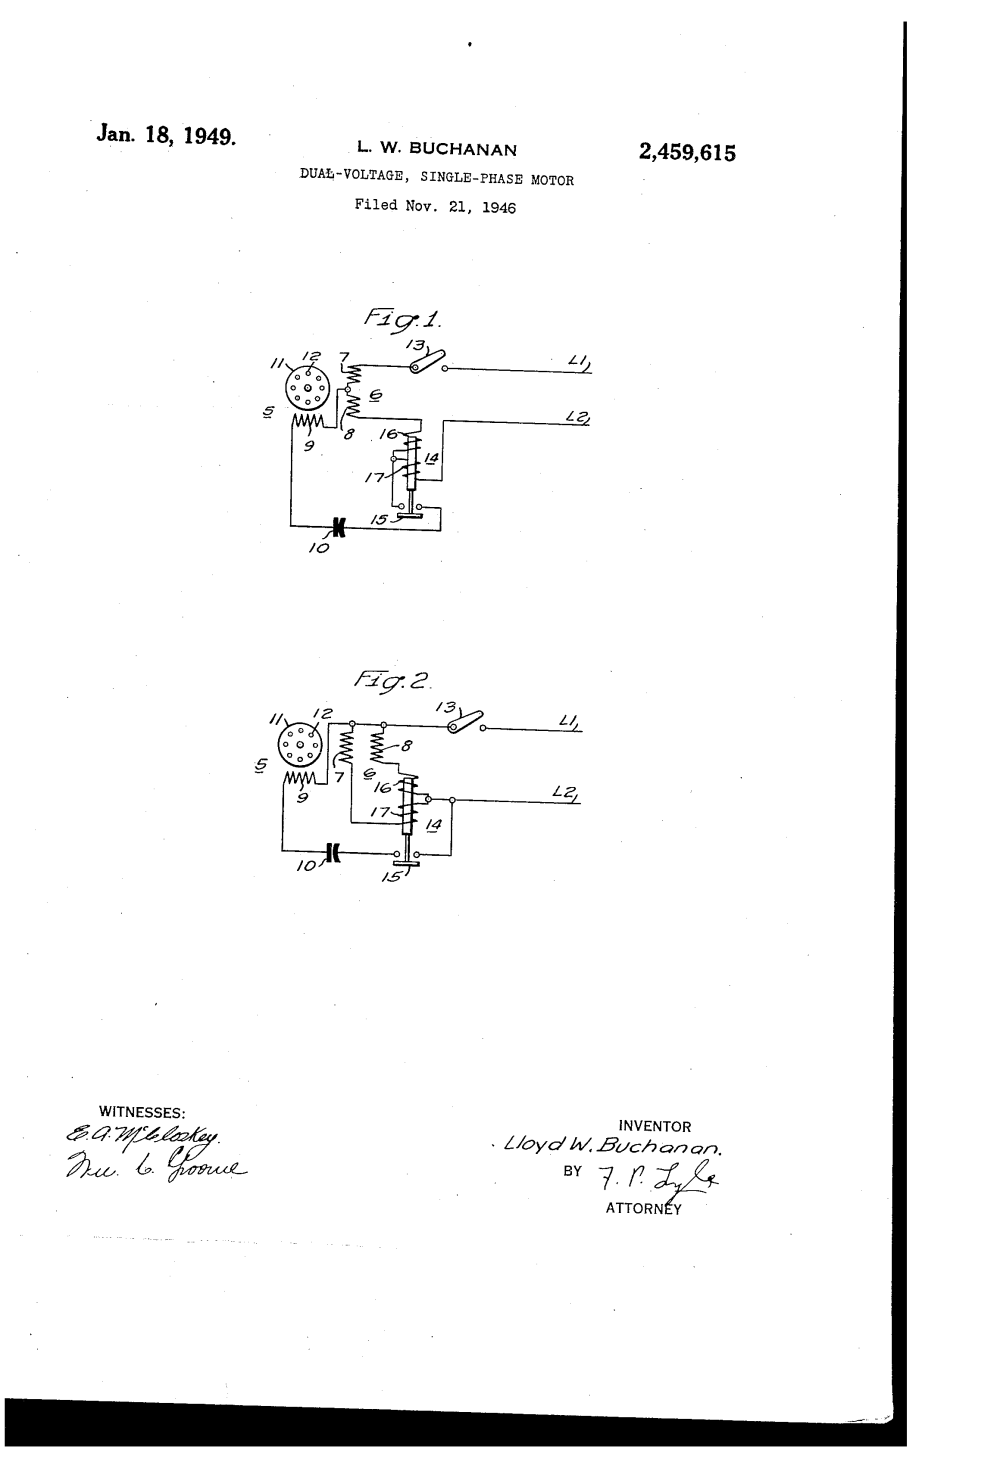 medium resolution of 0 patent us2459615 dual voltage single phase motor google patents single phase dual single phase dual voltage motor wiring diagram